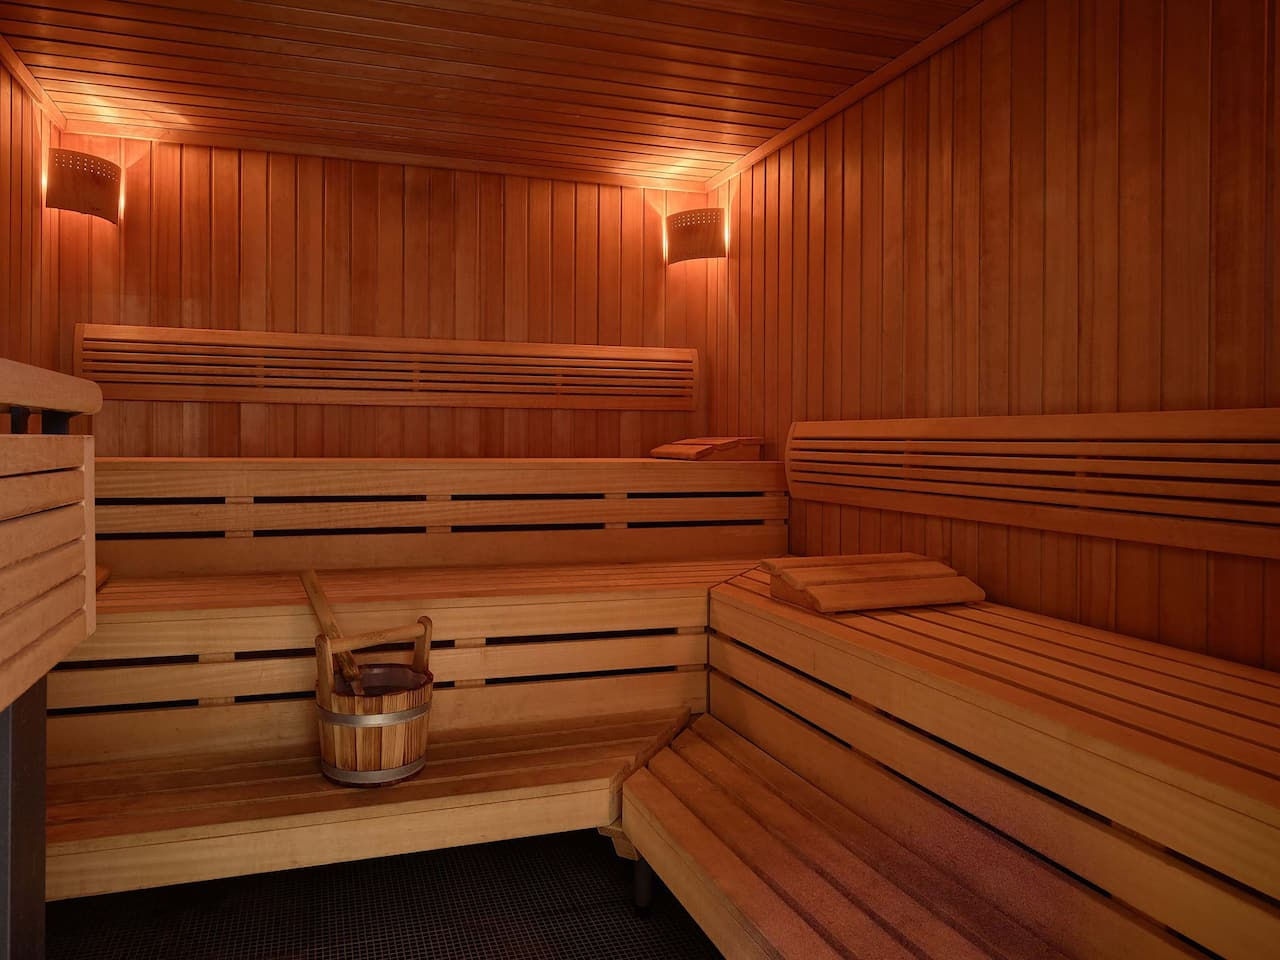 Hyatt Regency | Sauna